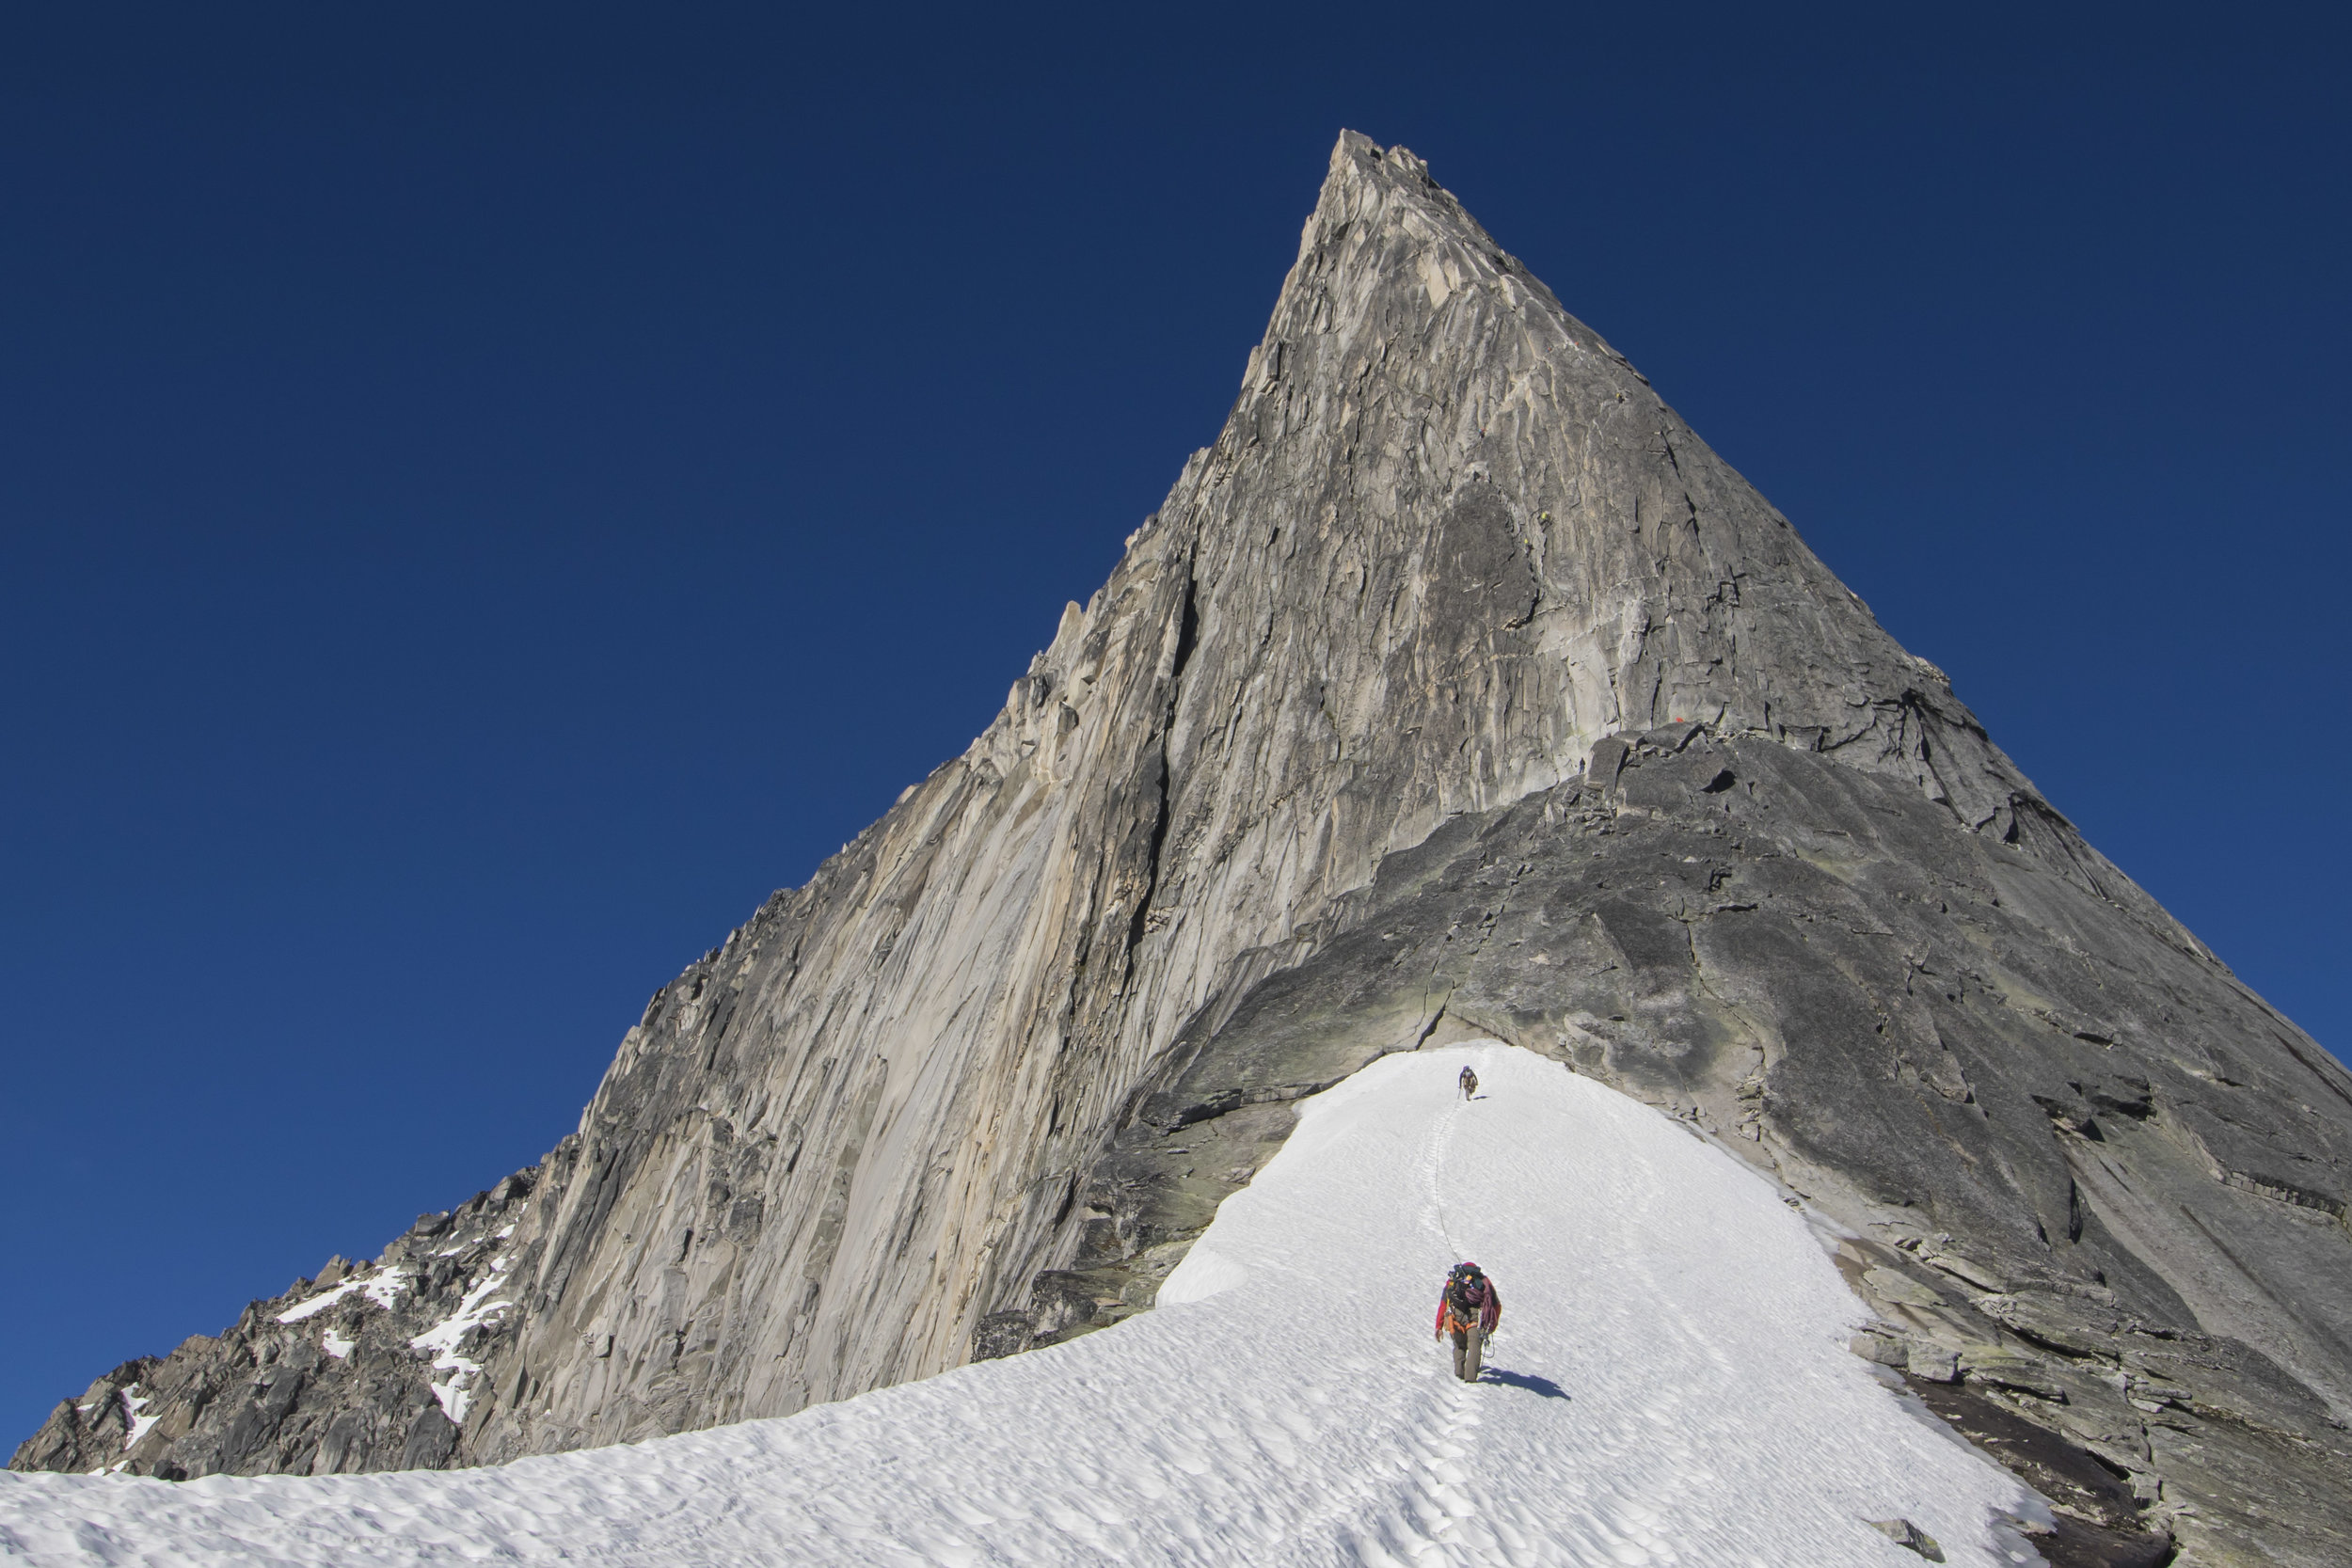 Climbers on approach to Bugaboo Spire